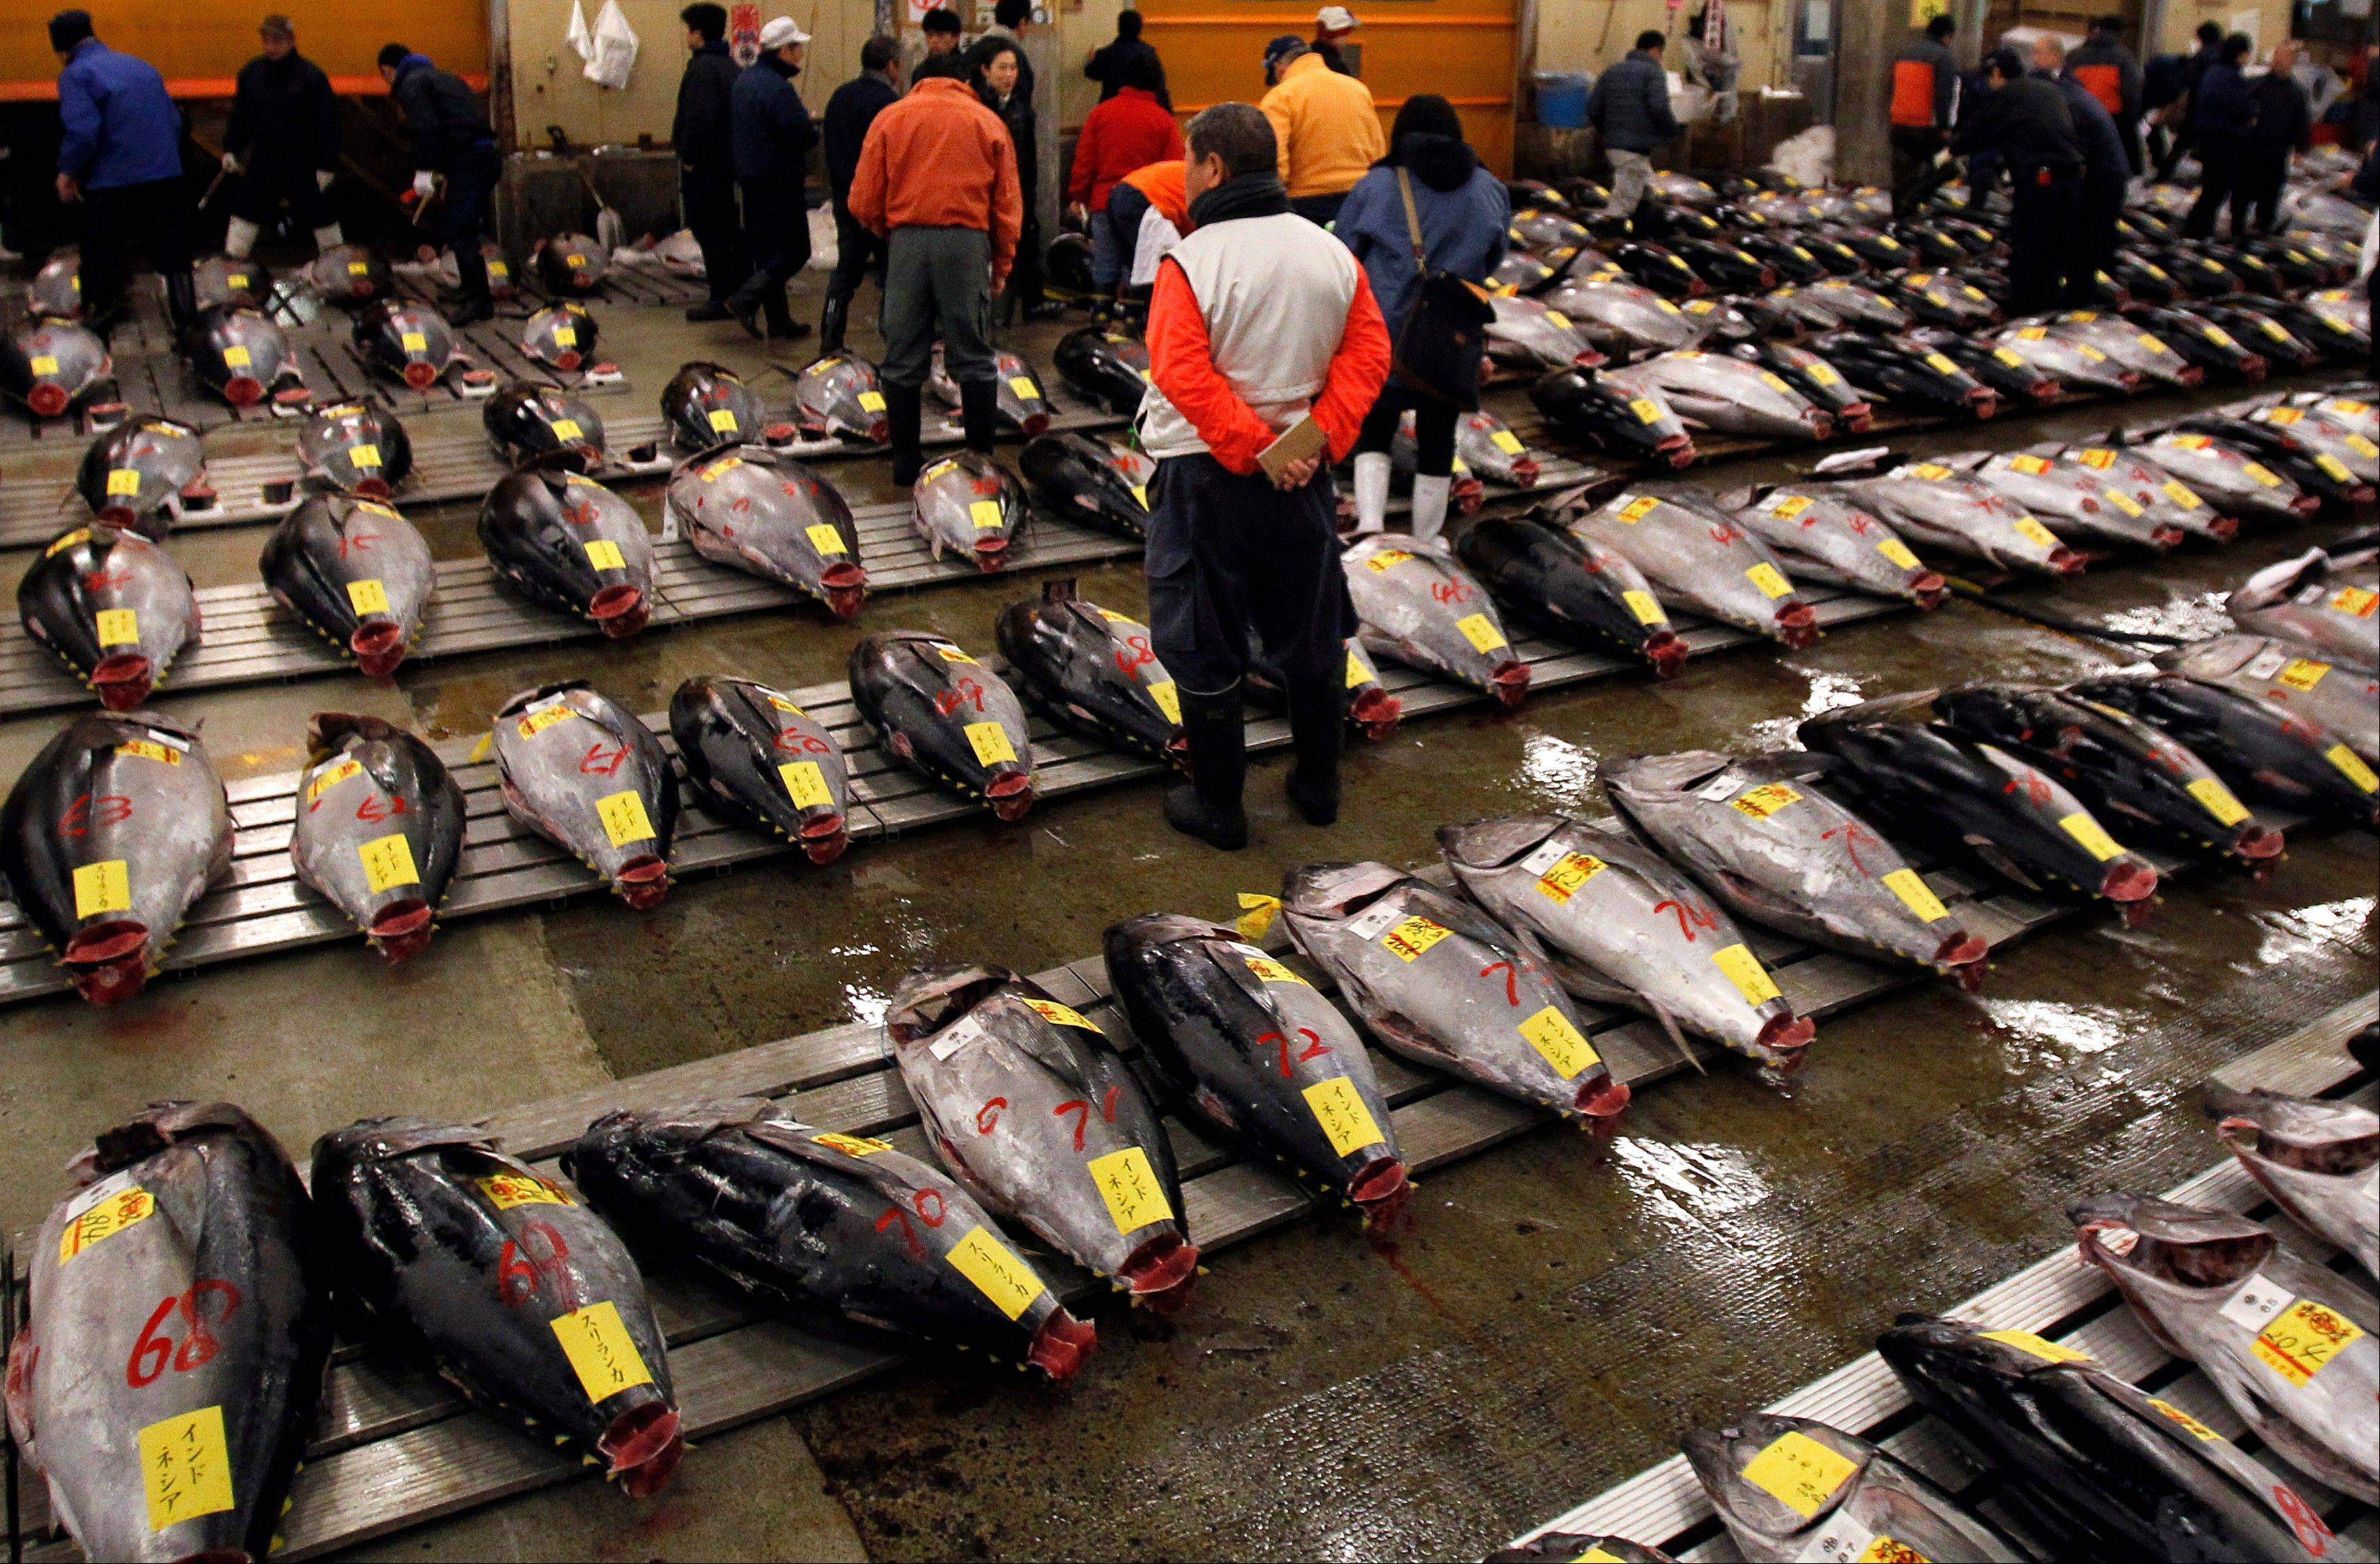 Catching bluefin tuna, called �hon-maguro� here, is a lucrative business. A single full-grown specimen can sell for 2 million yen, or $20,000, at Tokyo�s sprawling Tsukiji fish market. Japanese fishermen are vying with Korean, Taiwanese and Mexican fisherman for a piece of a $900 million wholesale market.